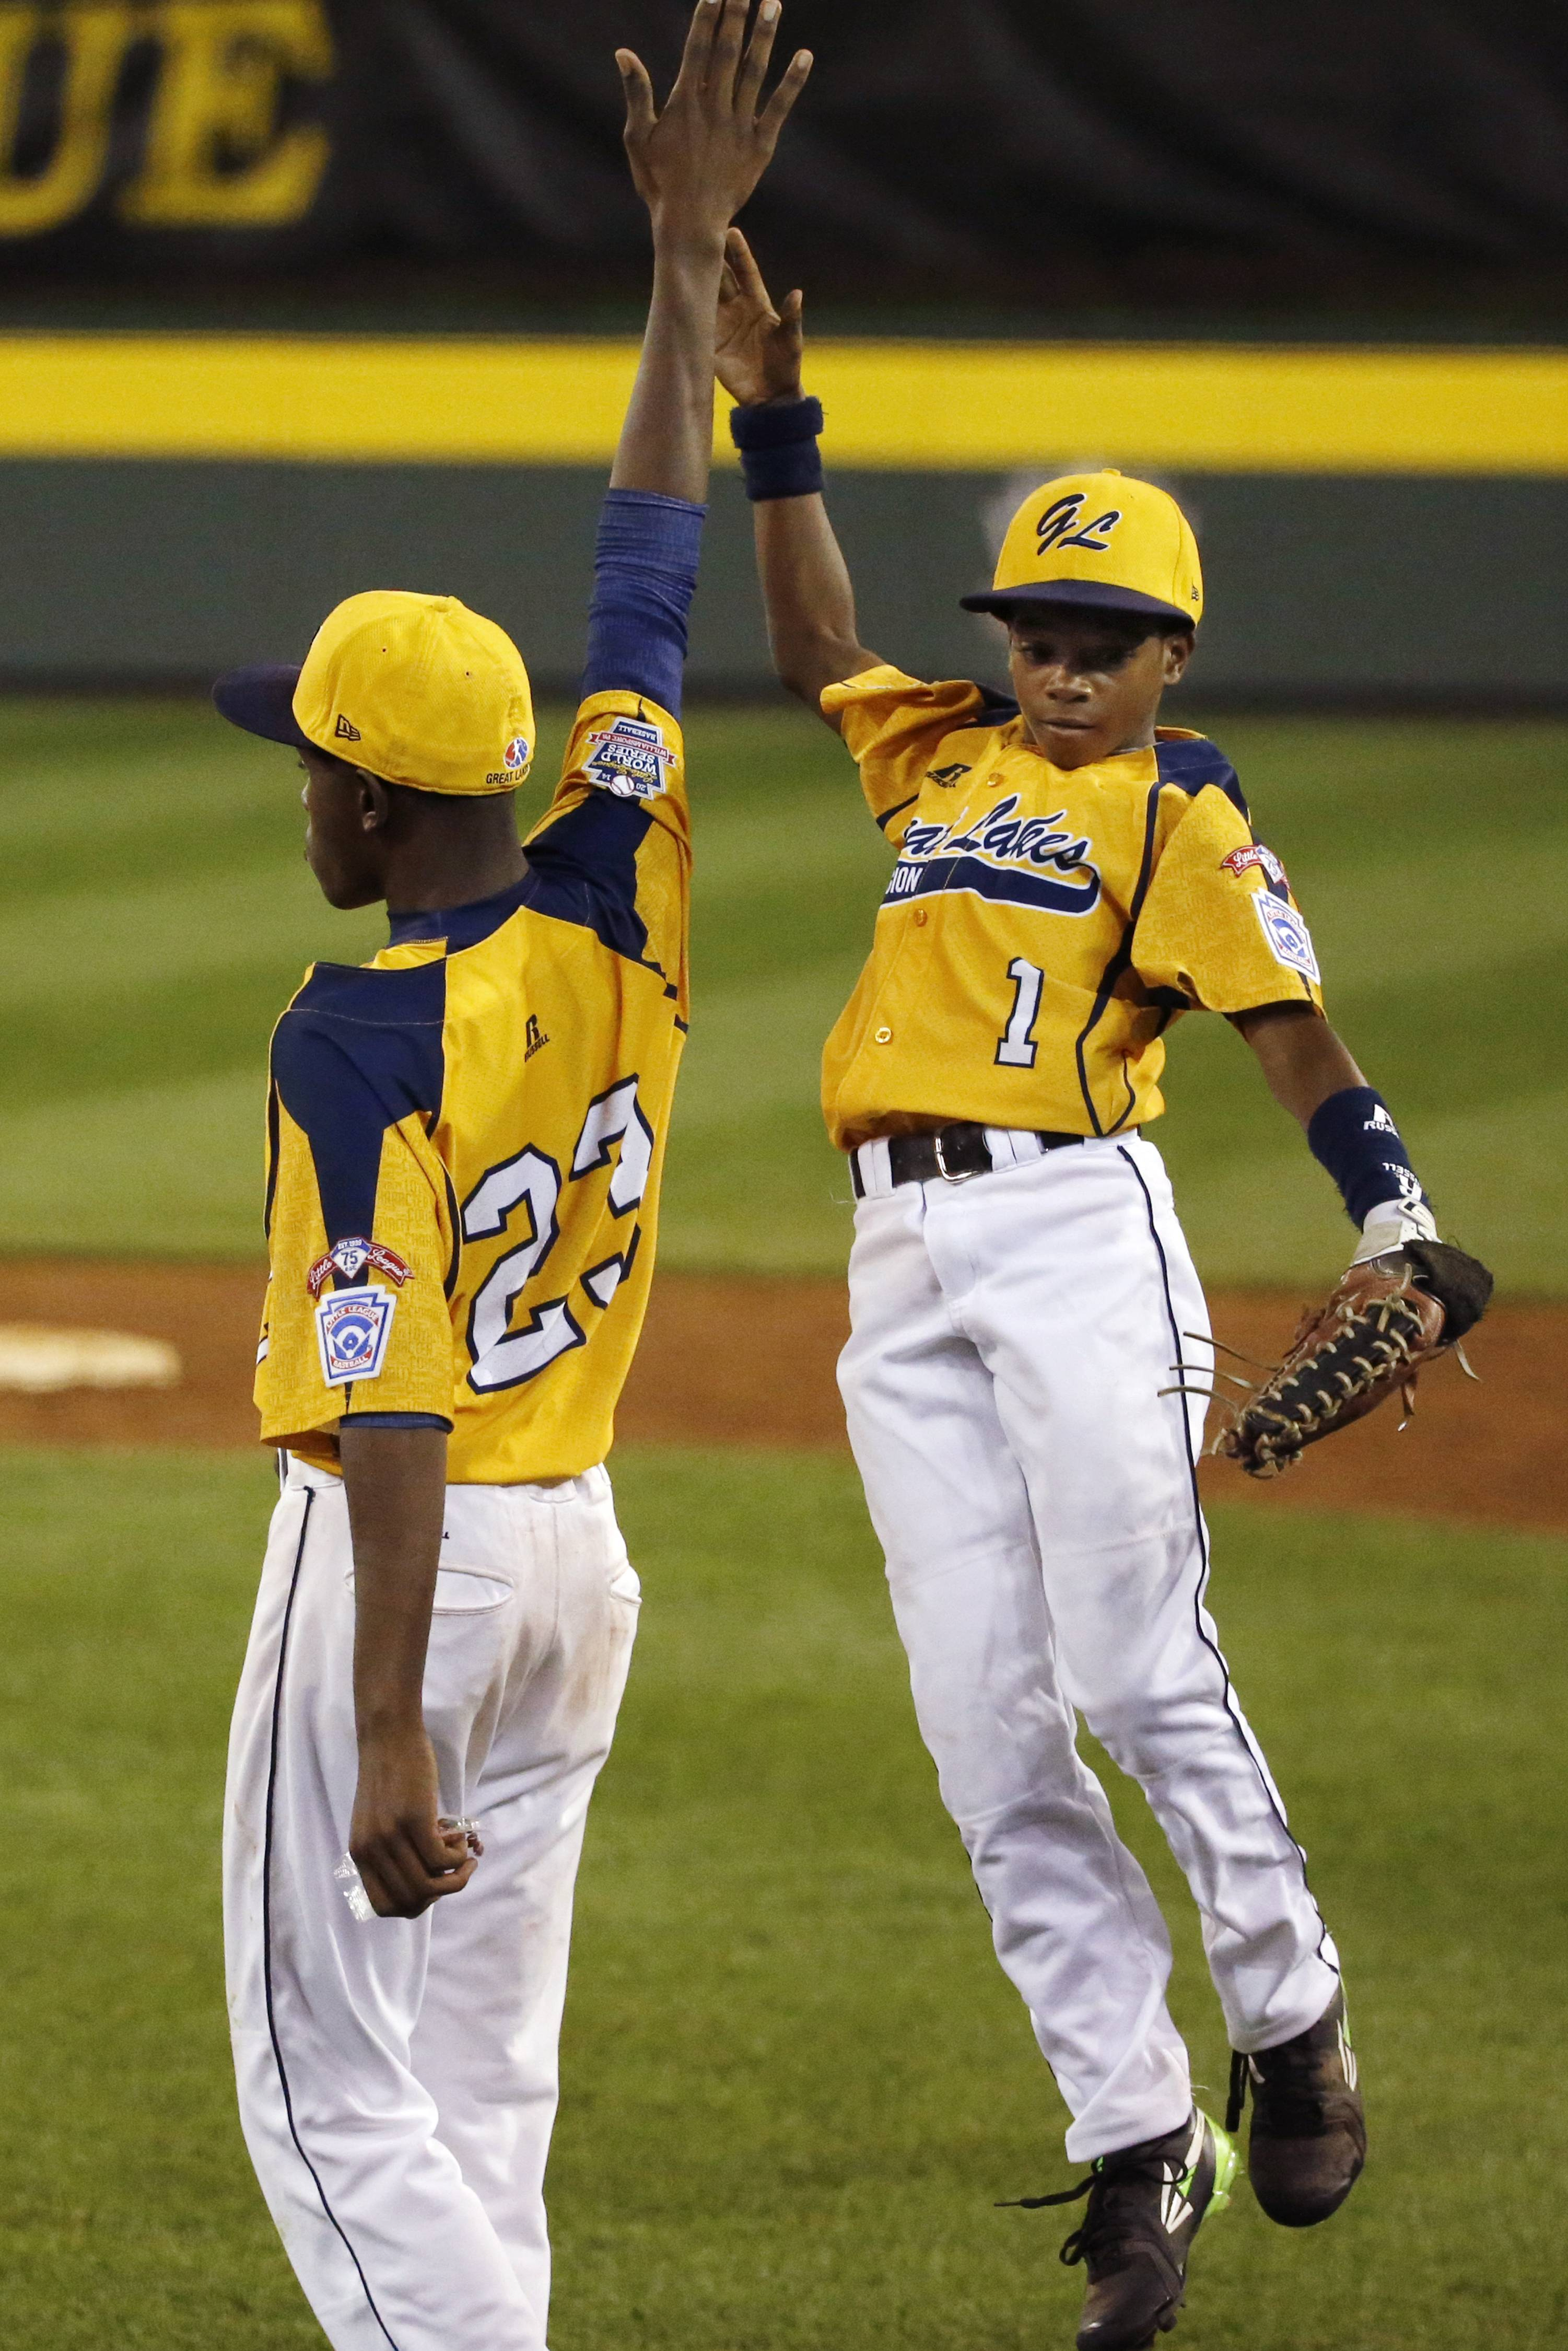 Chicago players Pierce Jones (23) and DJ Butler (1) celebrate a 6-1 win over Pearland in an elimination baseball game at the Little League World Series tournament in South Williamsport, Pa., Tuesday, Aug. 19, 2014.